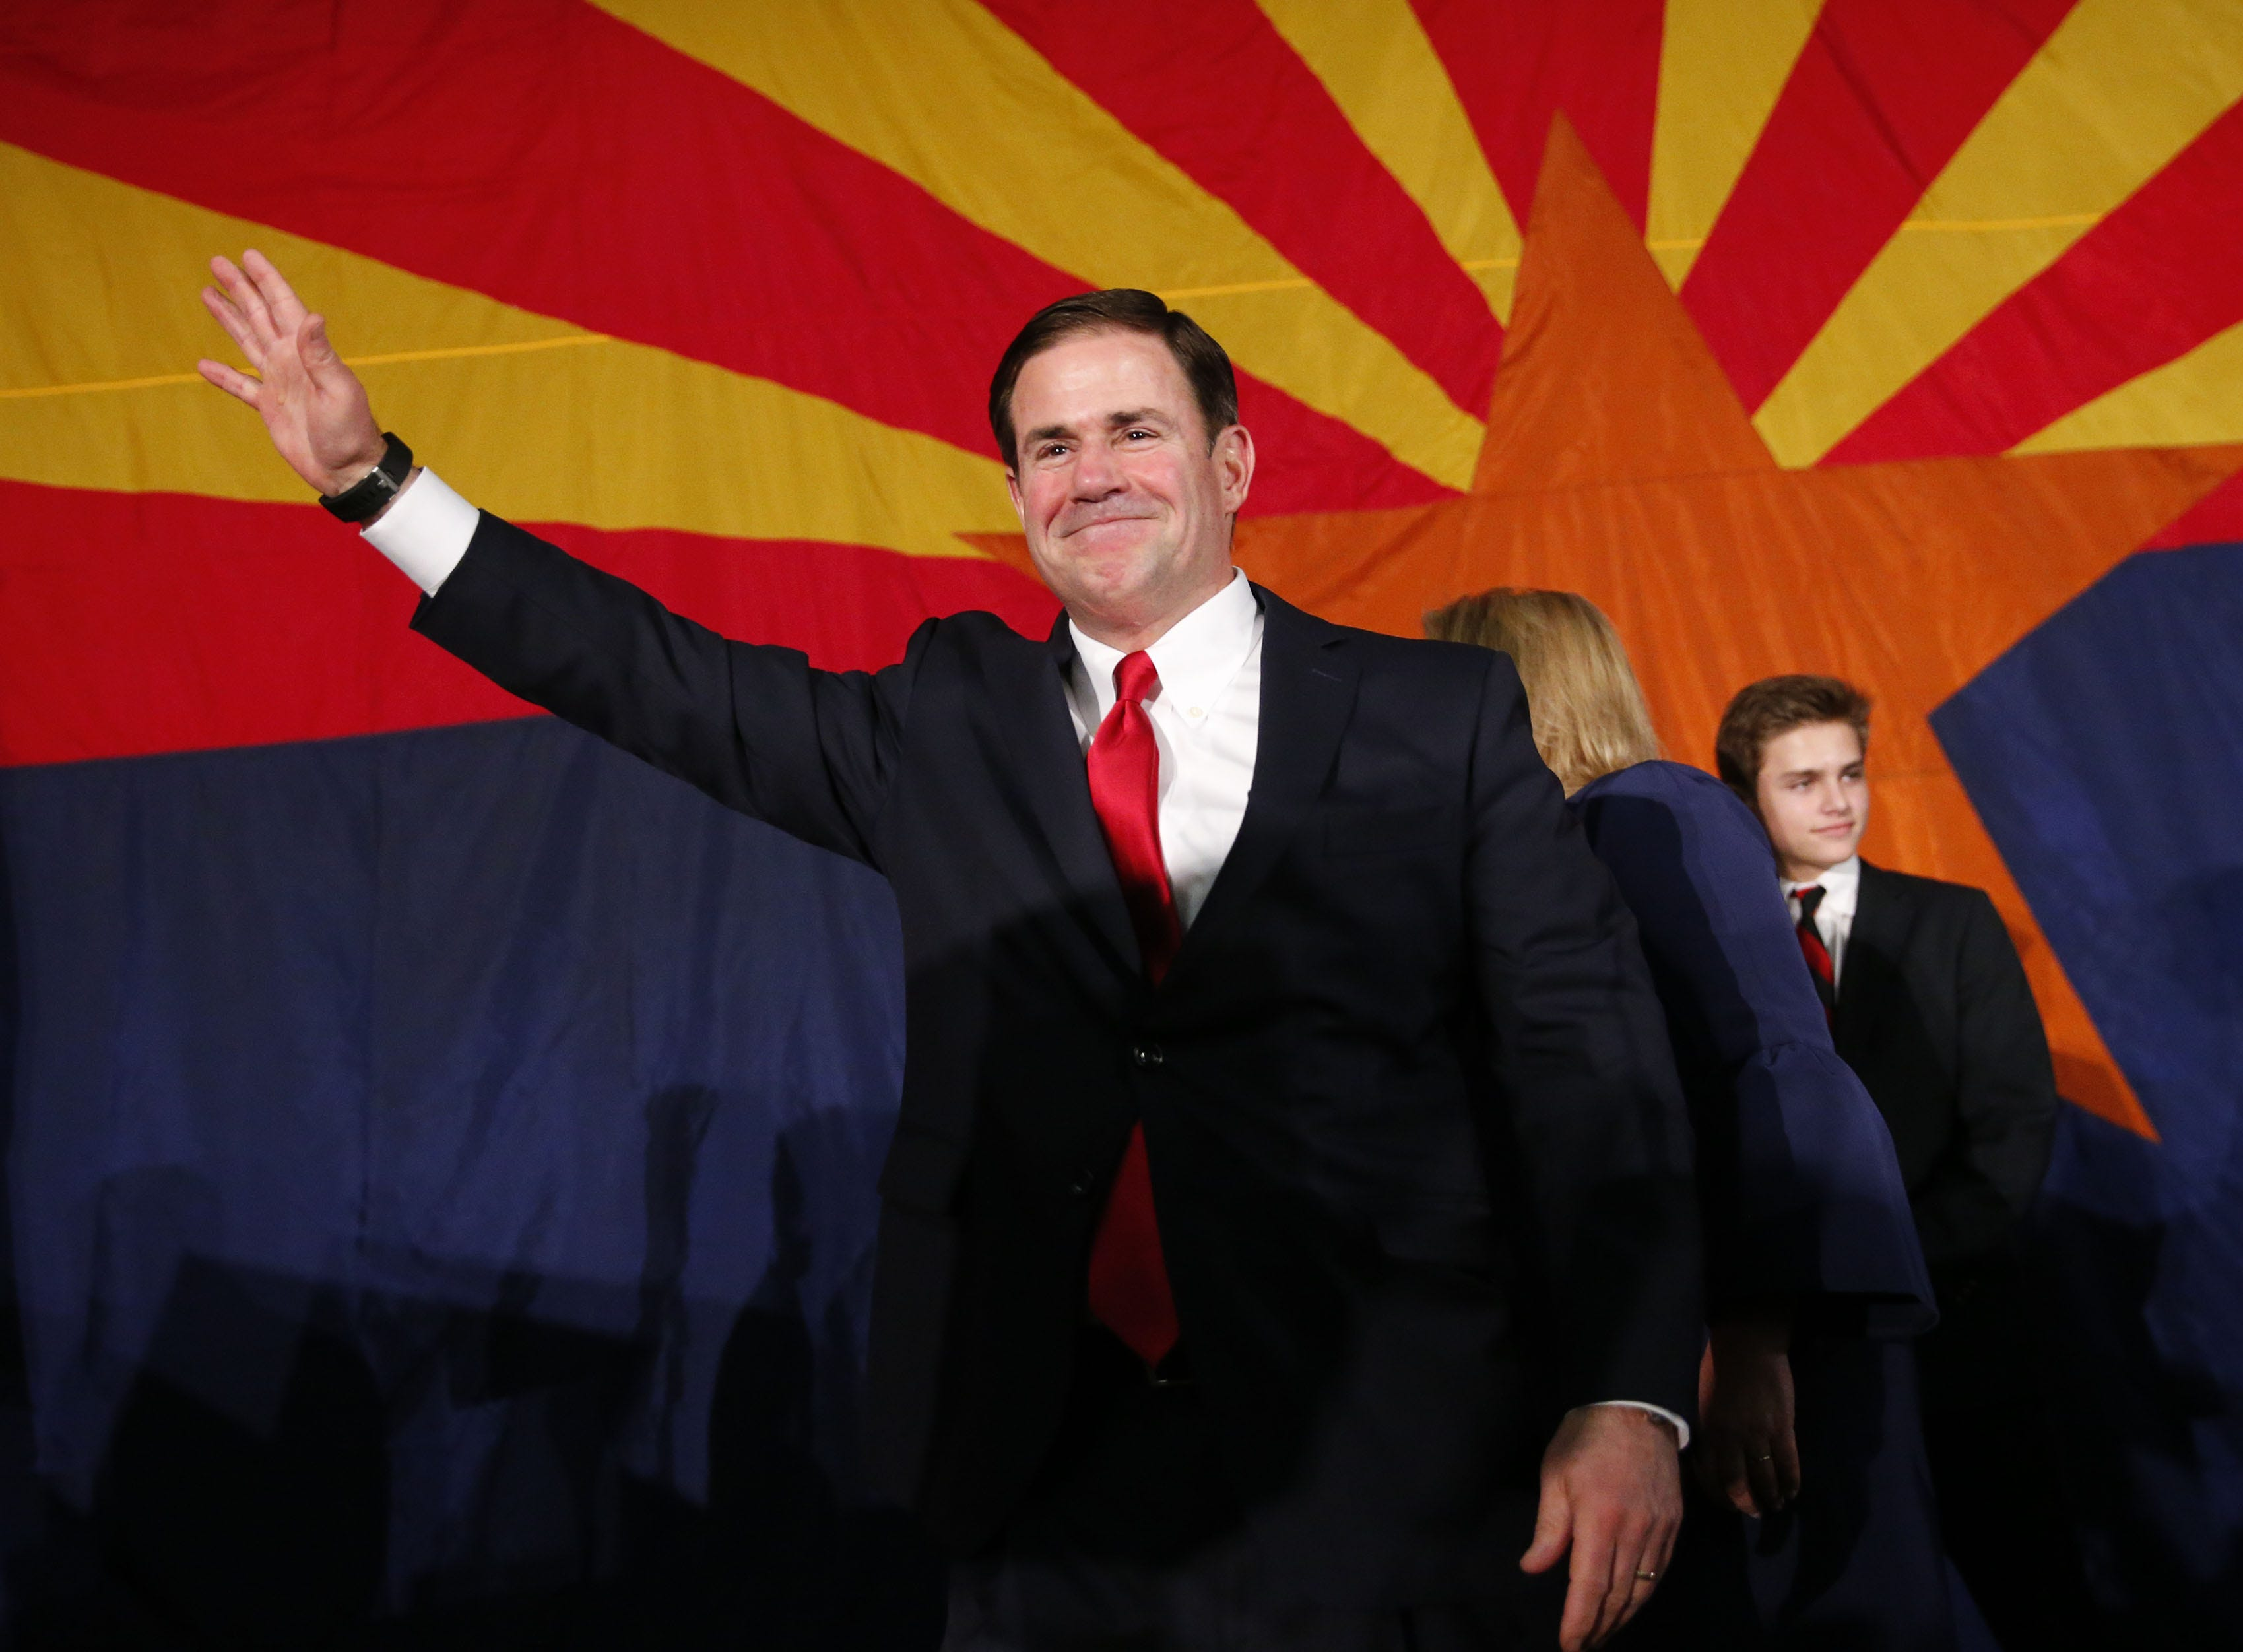 Gov. Doug Ducey speaks to supporters Nov. 6, 2018, during the Arizona Republican Party Election Night party in Scottsdale. Ducey won his re-election against Democratic challenger David Garcia.